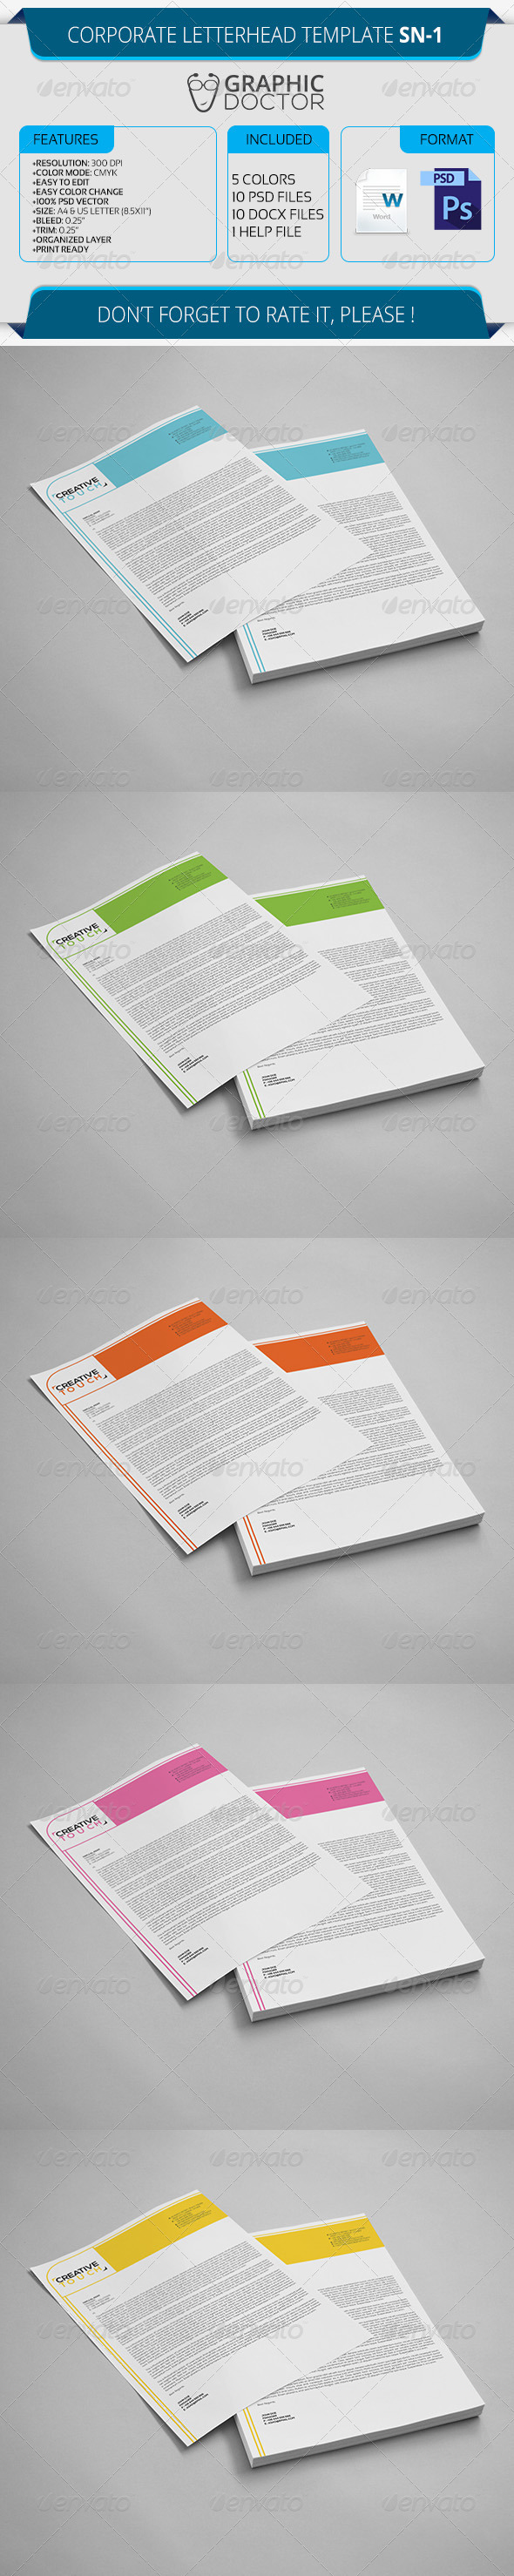 Corporate Letterhead Template SN-1 - Stationery Print Templates